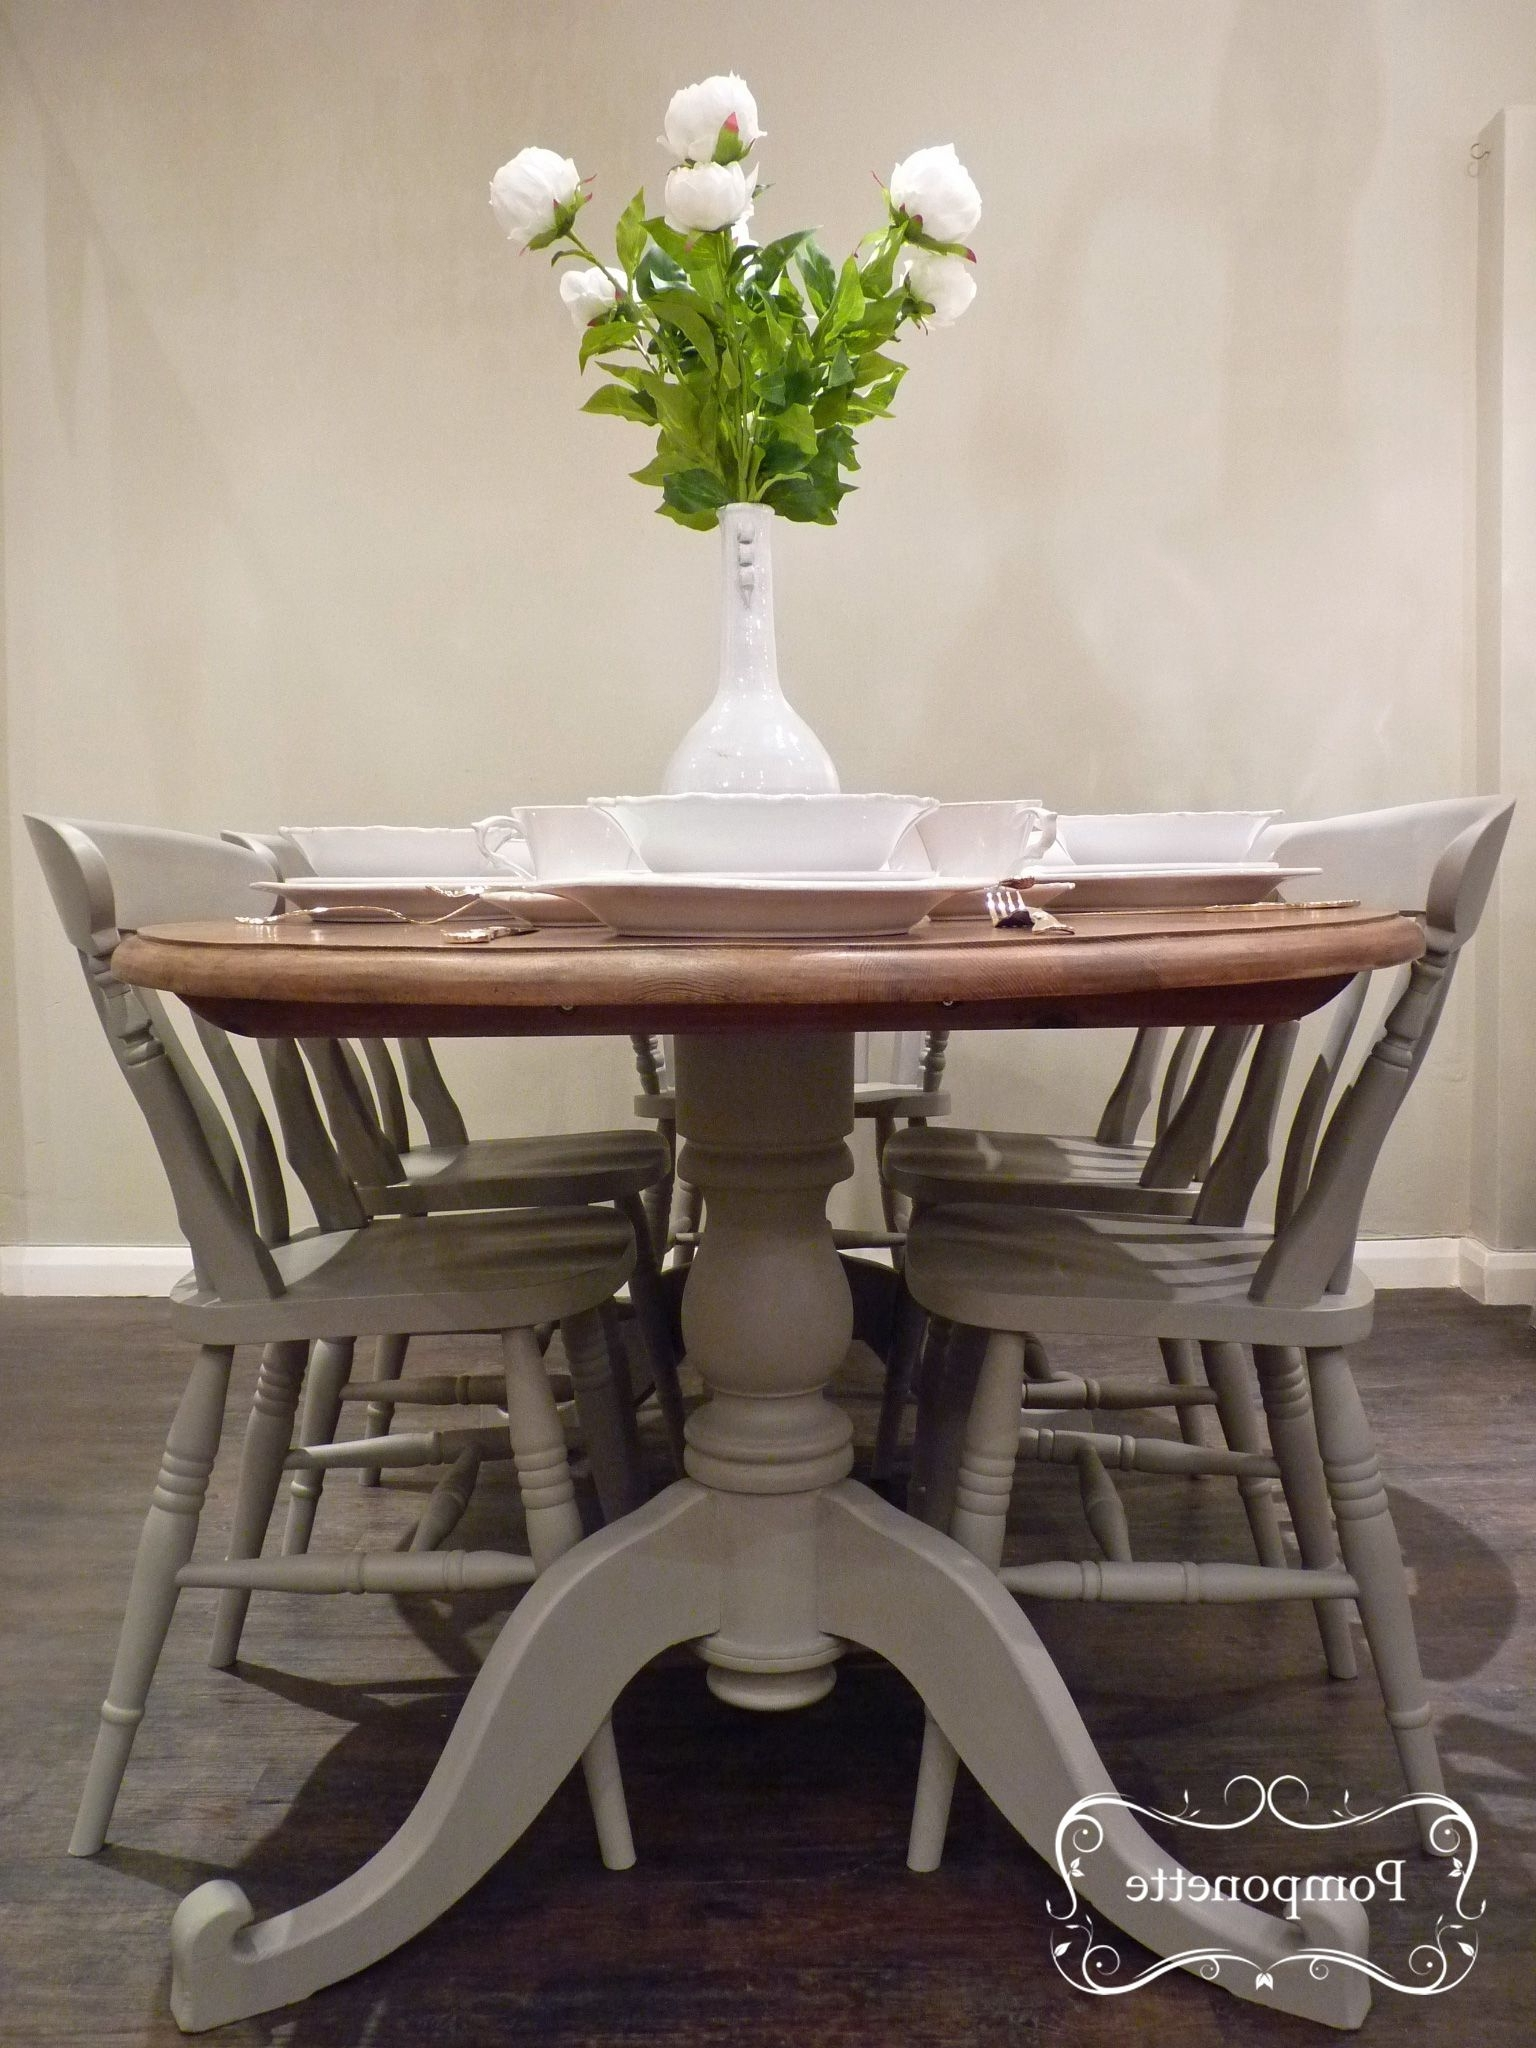 Dining Tables And Six Chairs For Well Known Oval Dining Table And Six Chairs. Pedestal Detail (View 9 of 25)